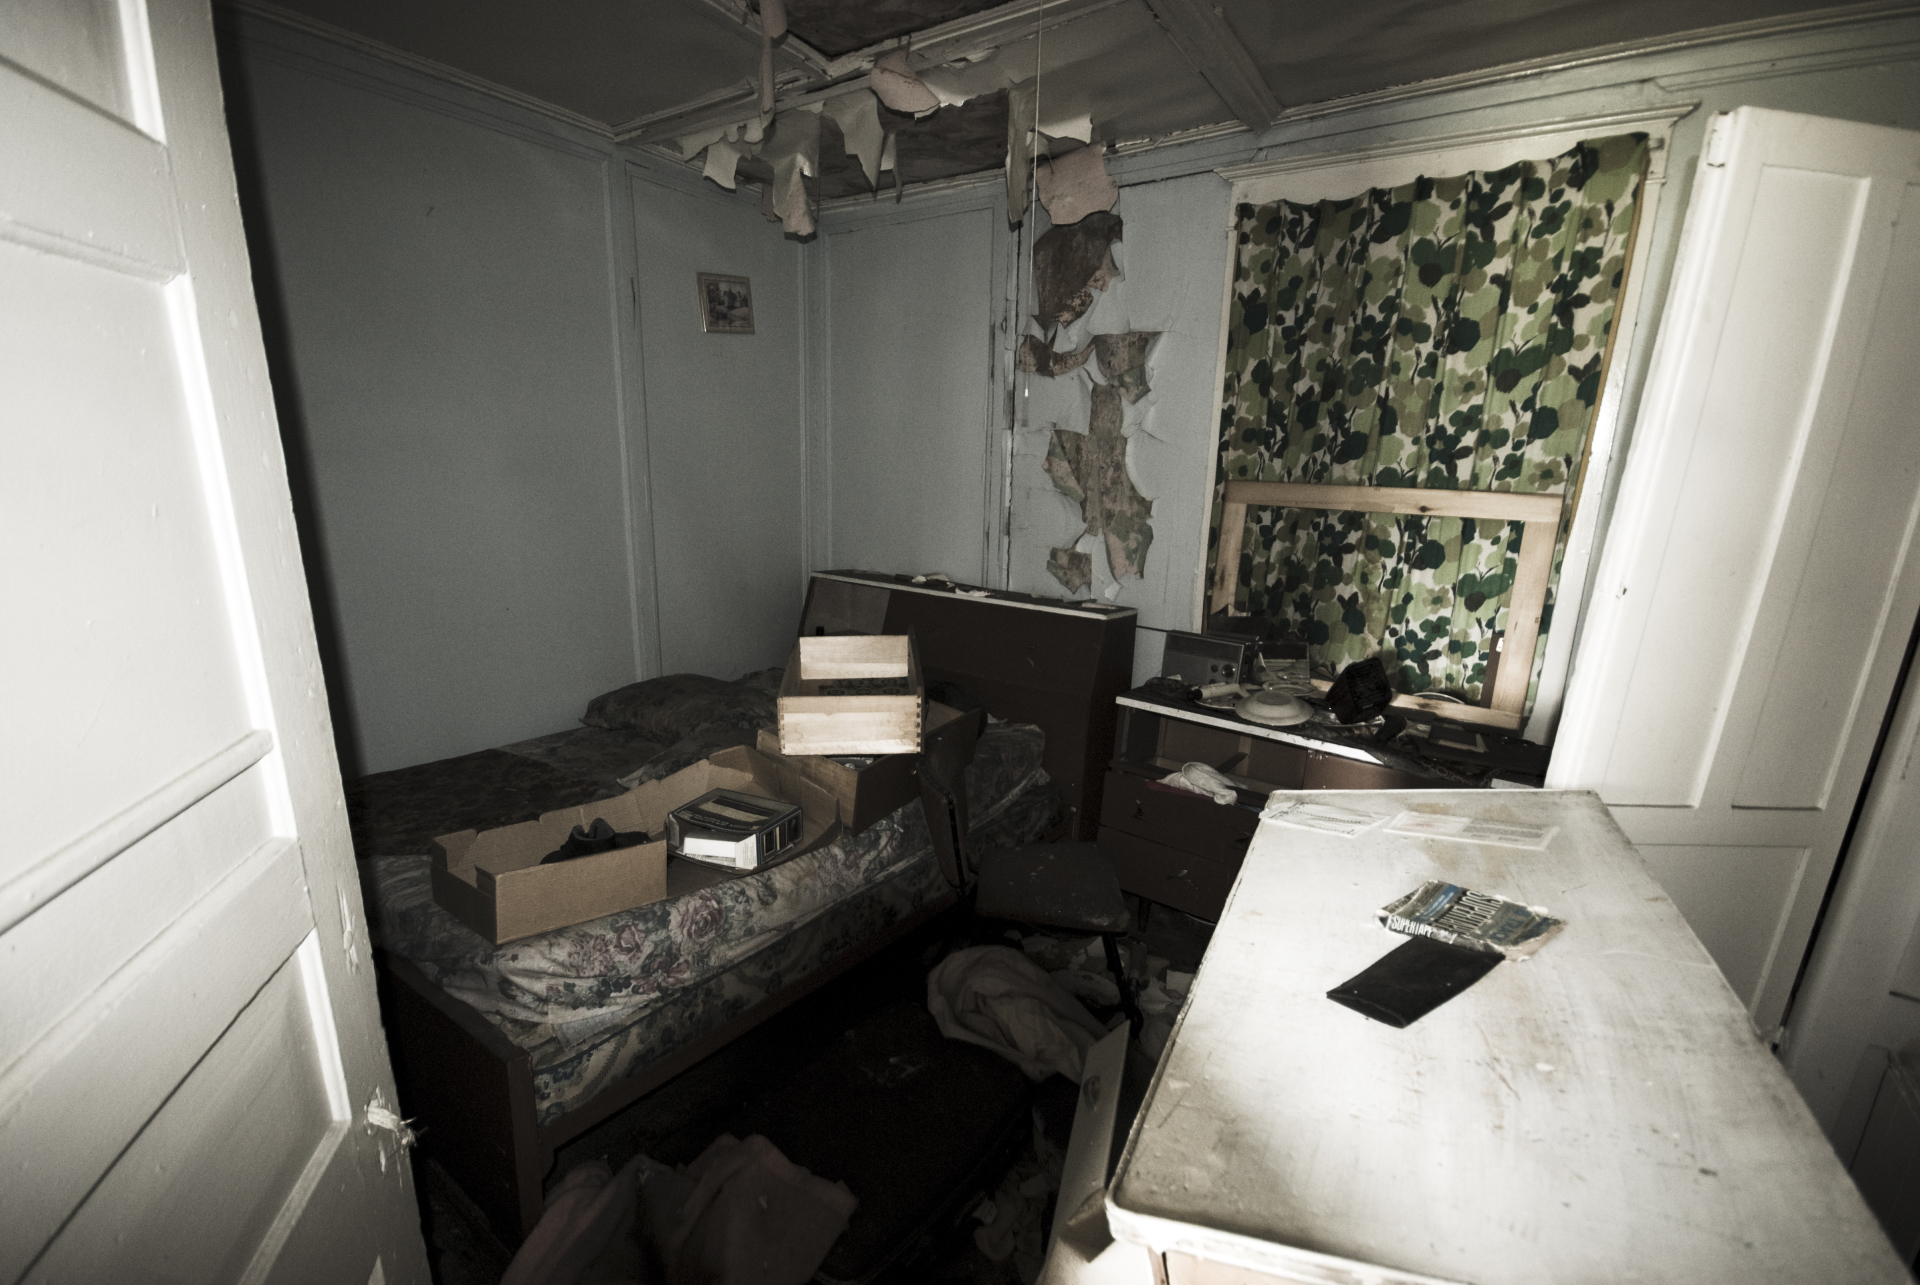 Bedroom of Abandoned House